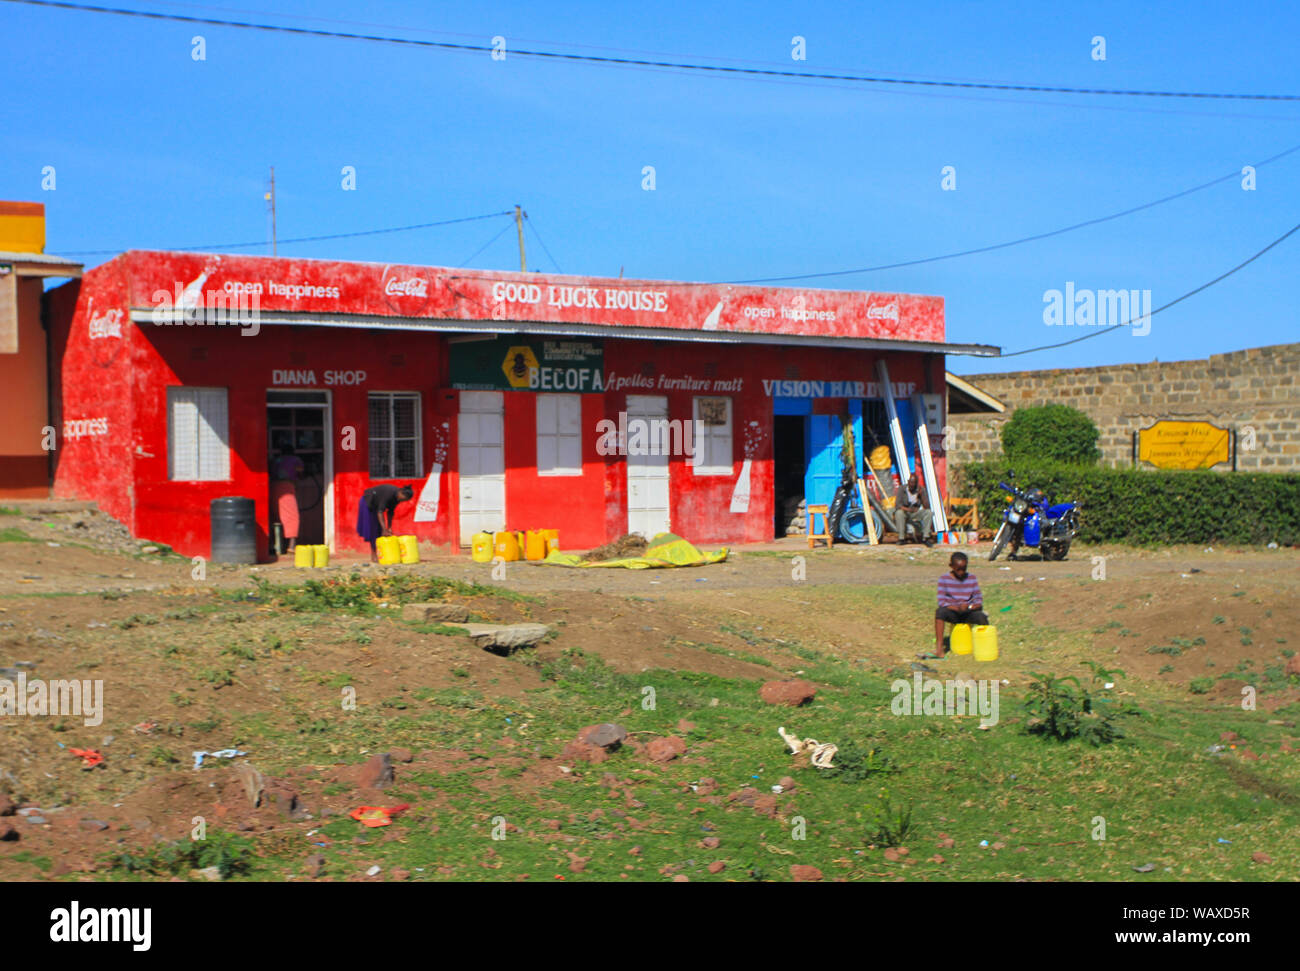 """Small shops at side of road, Kenya, East Africa. Local people outside selling water containers on hot day. Shop named """"Good Luck house"""" Stock Photo"""